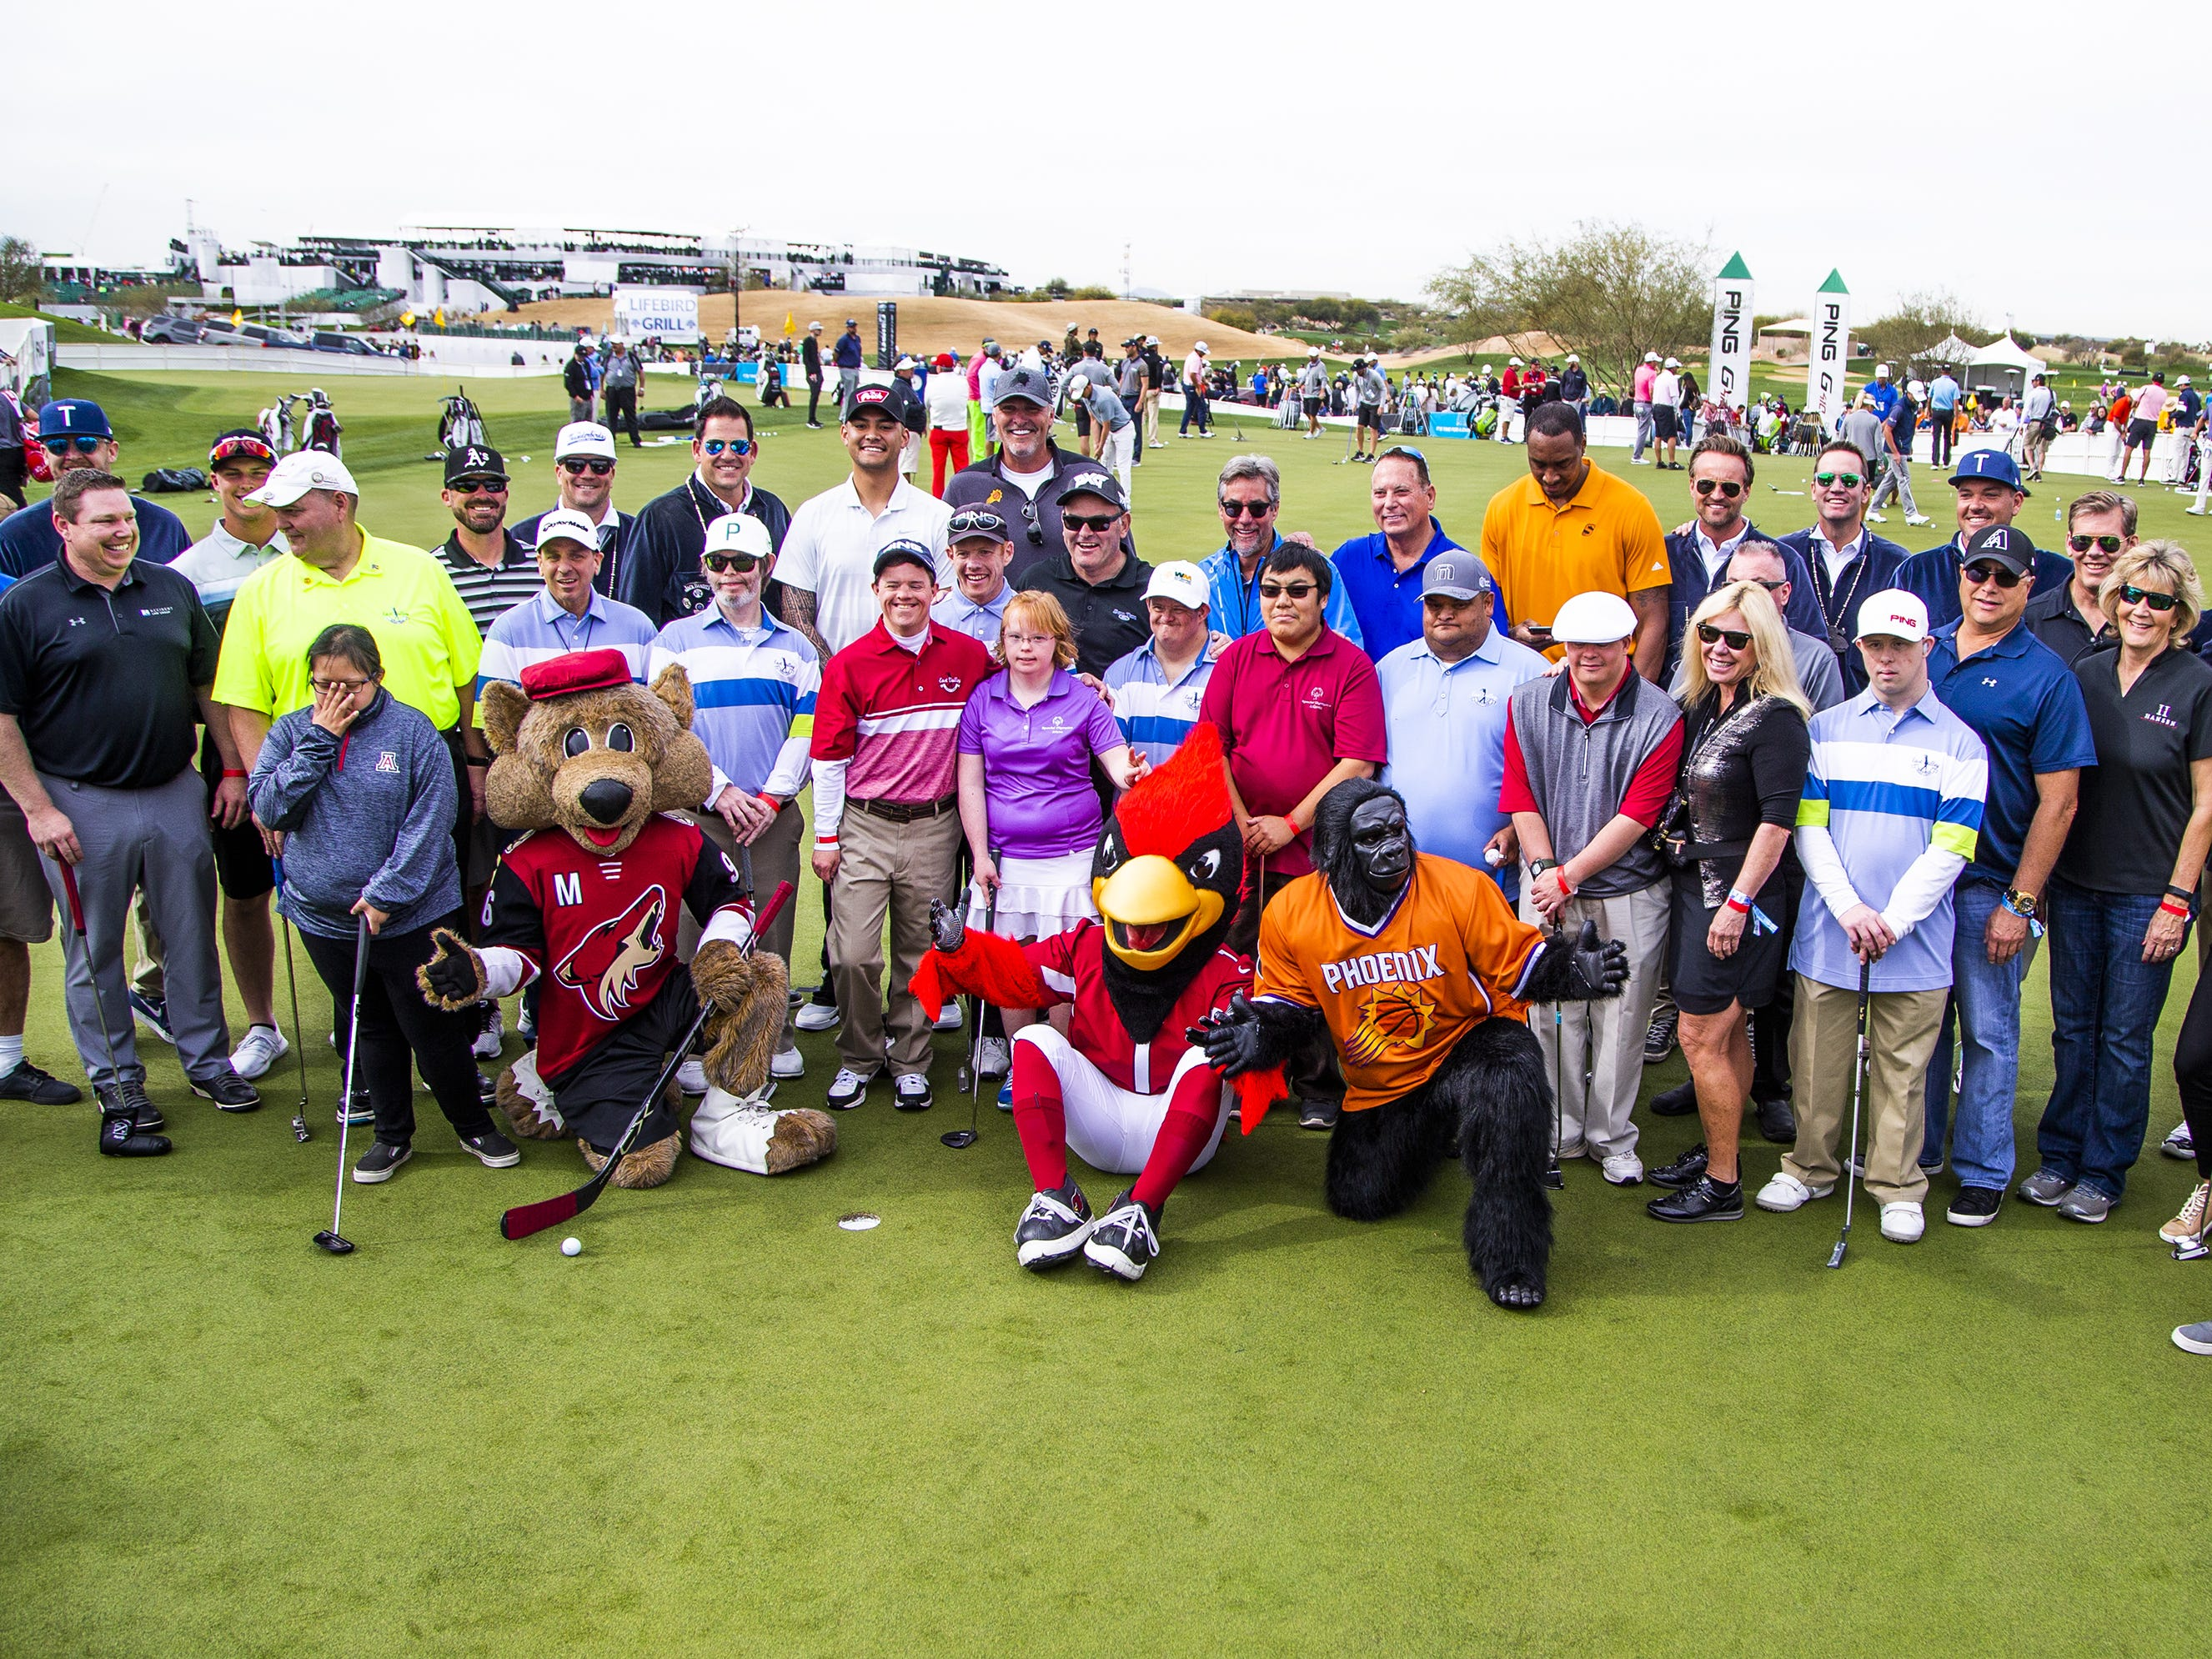 A group portrait is taken at the conclusion of the San Tan Ford Special Olympics Open at the Waste Management Phoenix Open at the TPC Scottsdale, Tuesday, January 29, 2019.